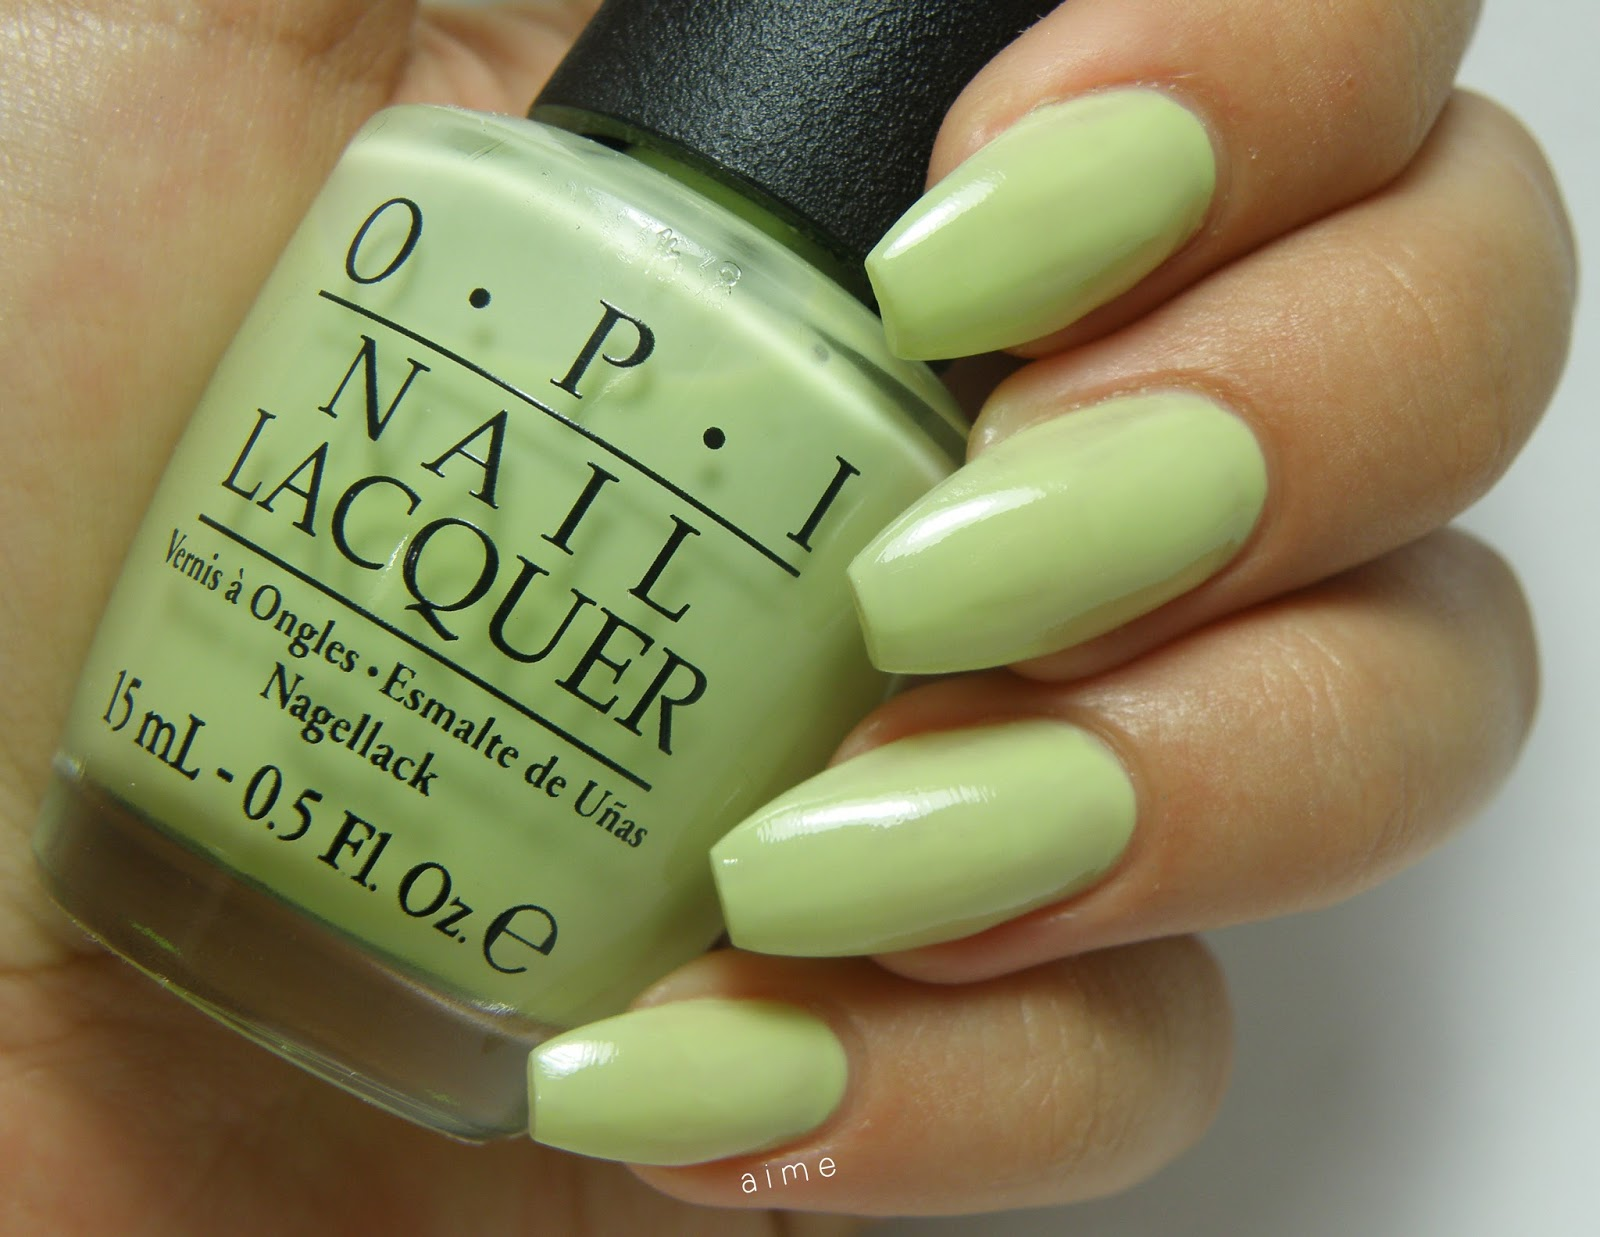 Al infinito y más esmalte: Swatch: Gargantuan Green Grape de Opi